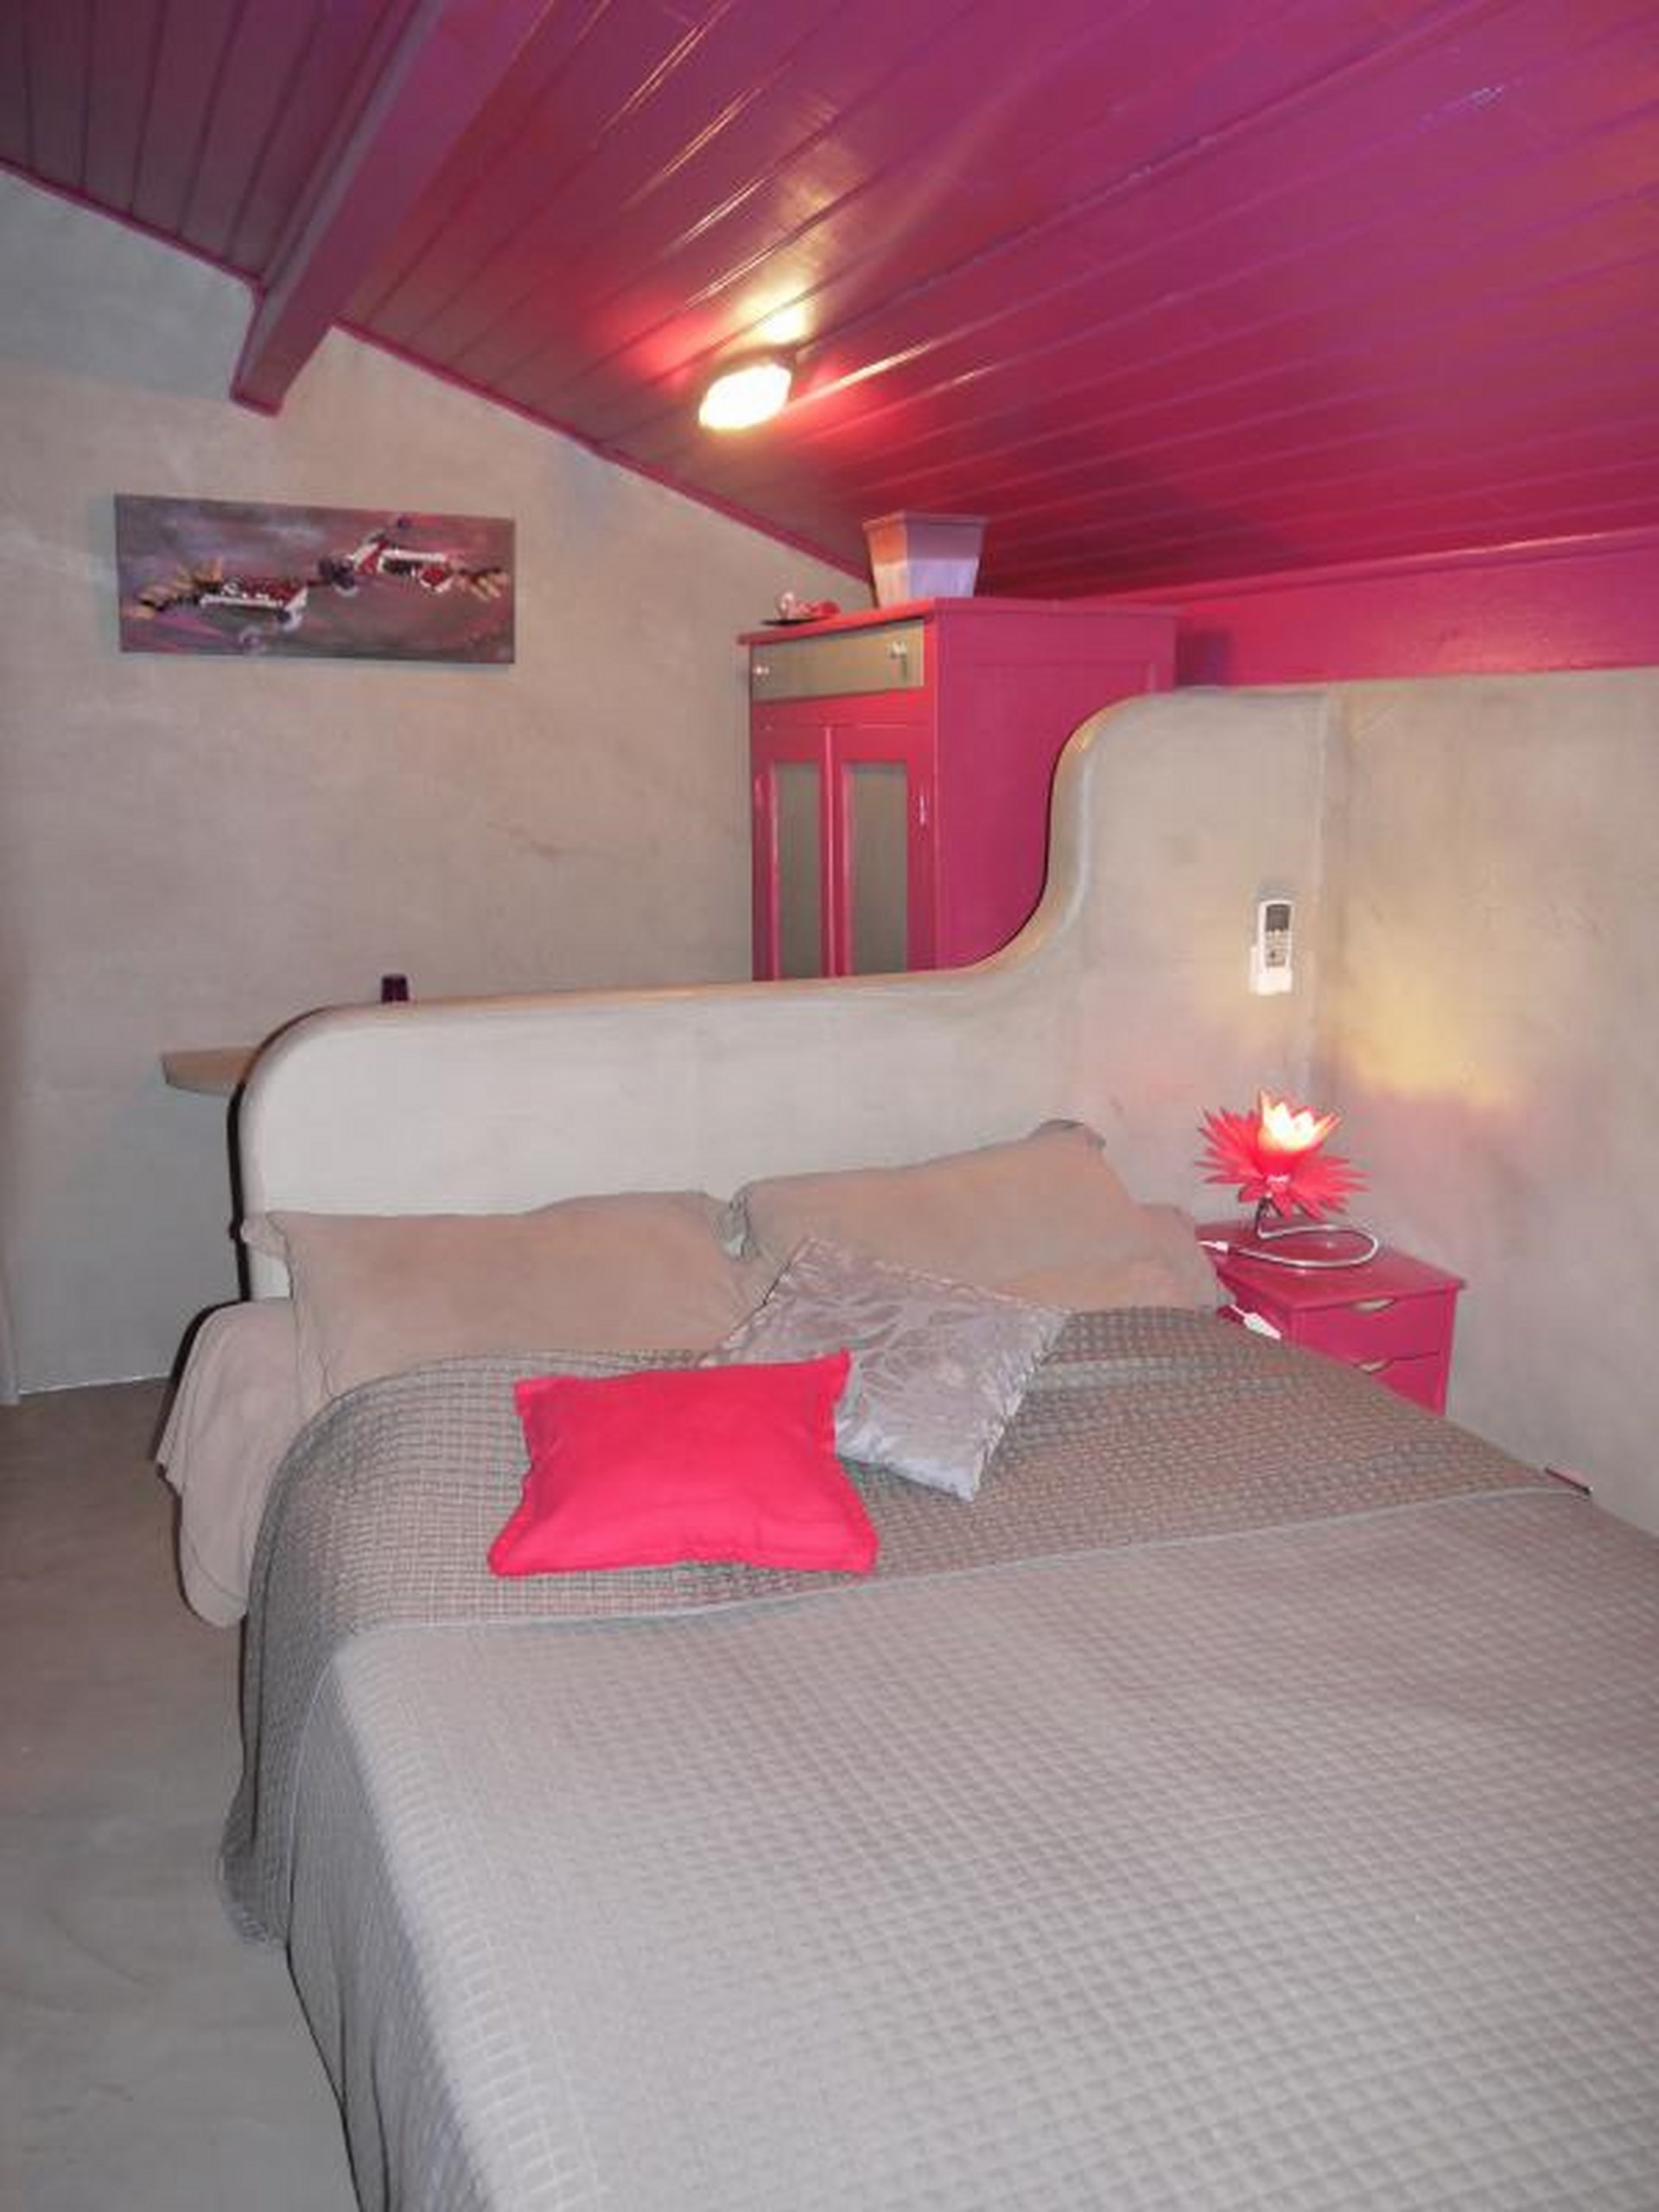 Chambres-d-hotes-bed-and-breakfast-corte-haute-corse-room-4-lit